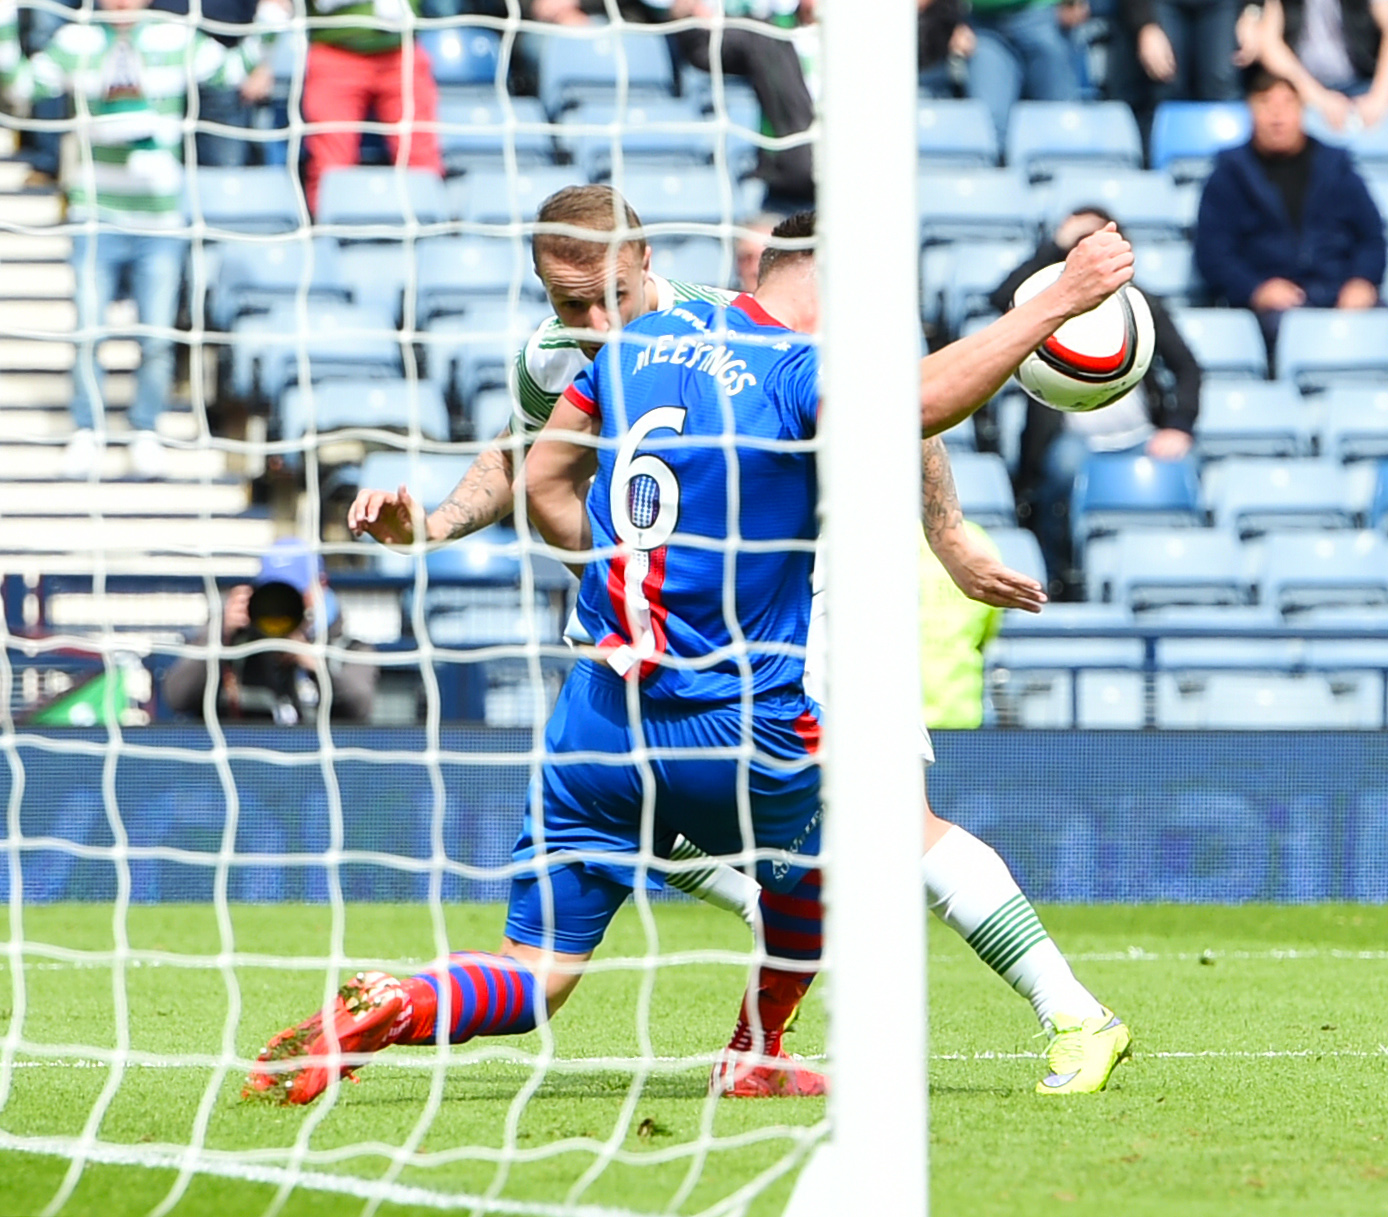 Inverness CT's Josh Meekings appears to handle a header from Leigh Griffiths